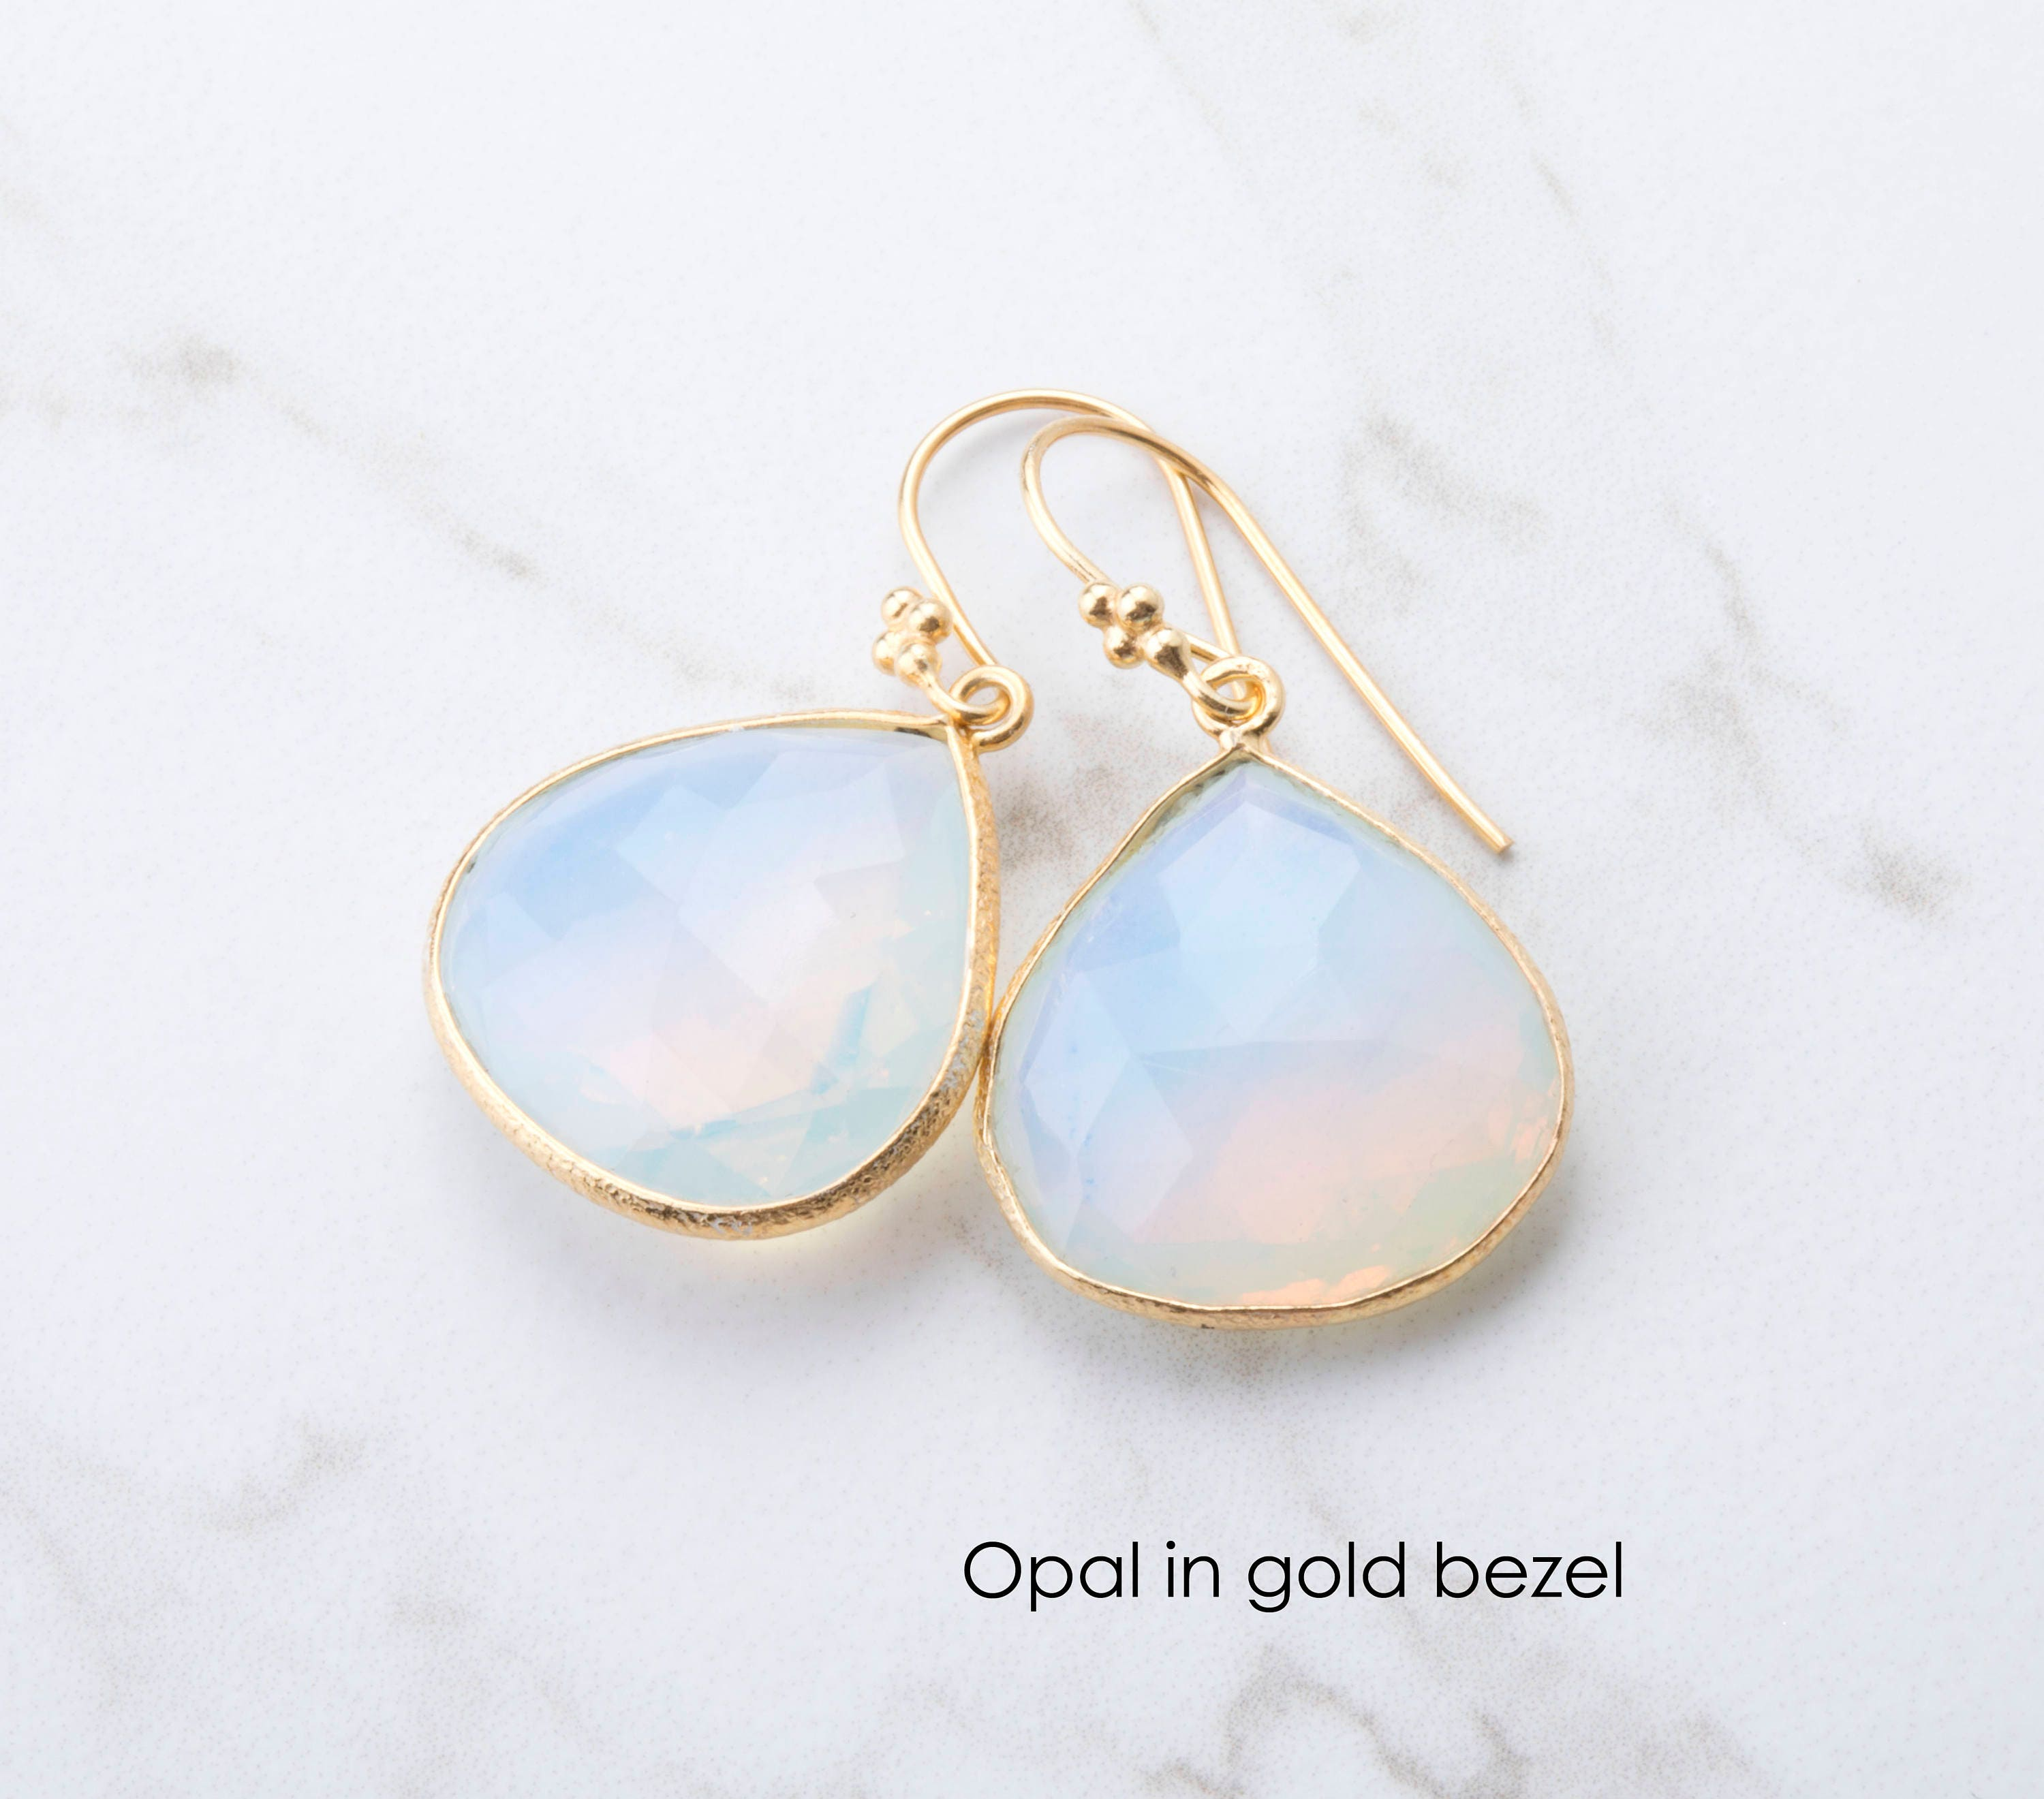 dejonghe diamond product original opal earrings and jewelry